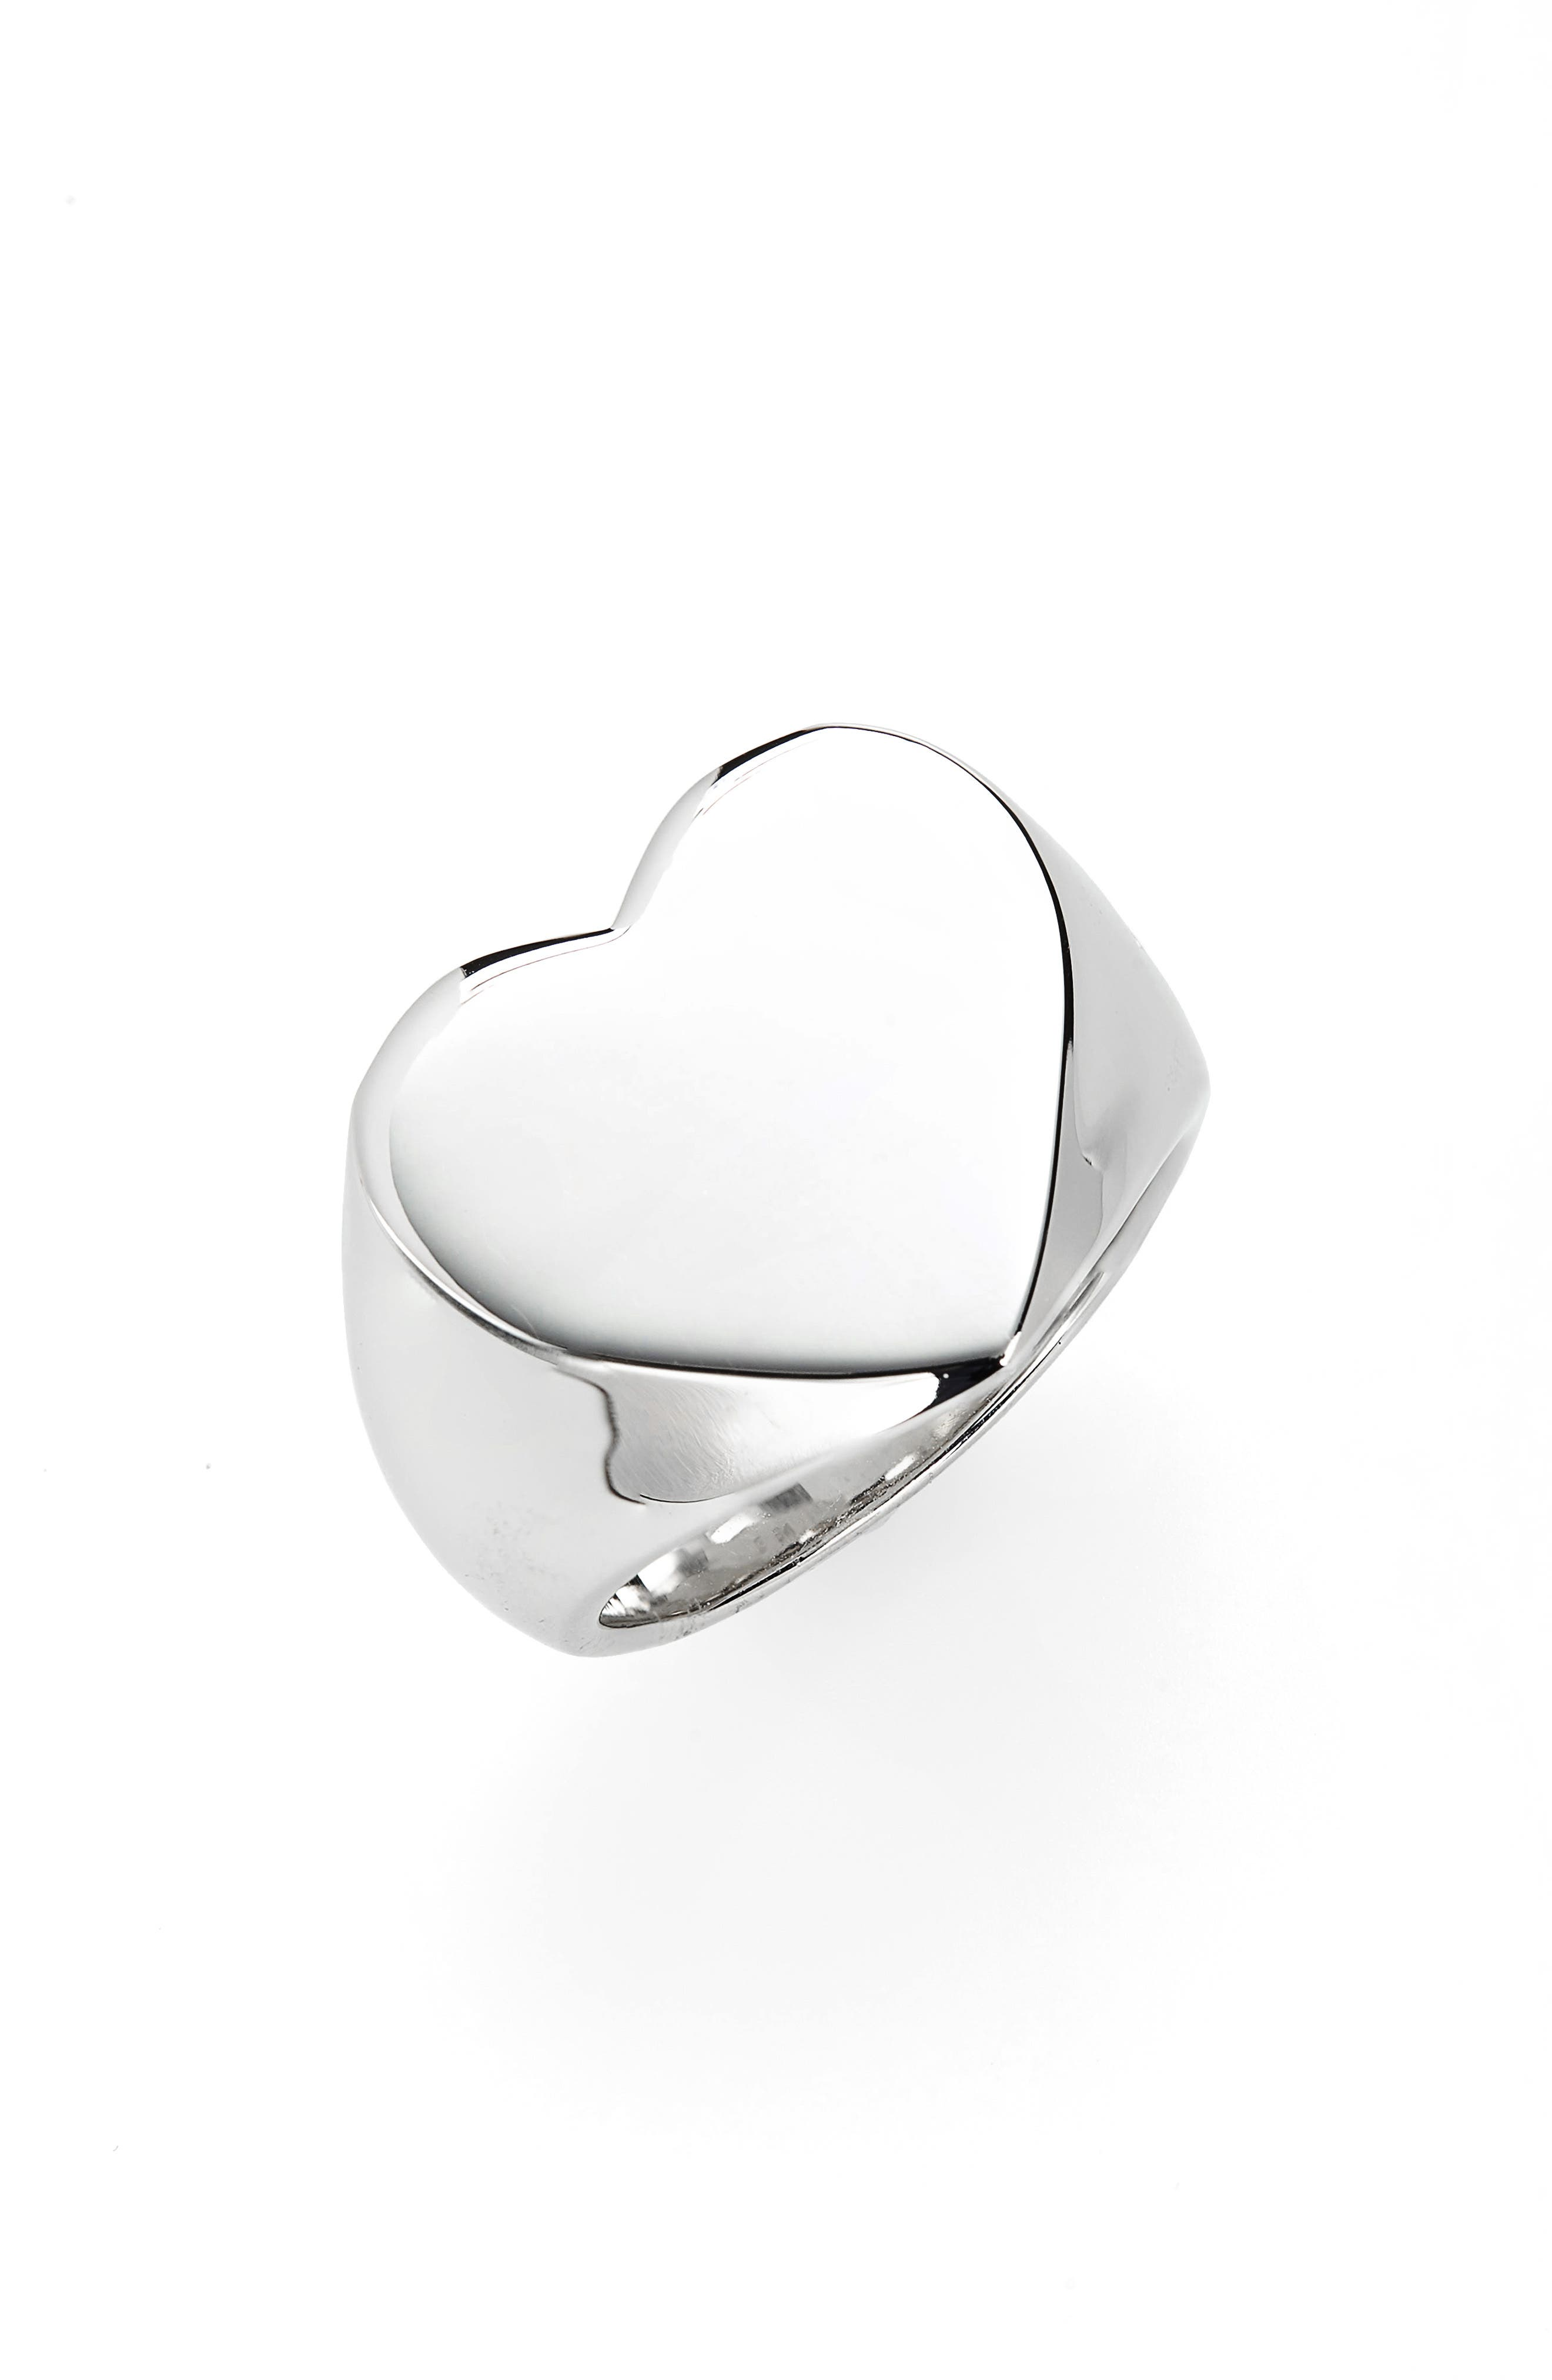 Ton Wood Heart Signet Ring,                             Main thumbnail 1, color,                             925 STERLING SILVER